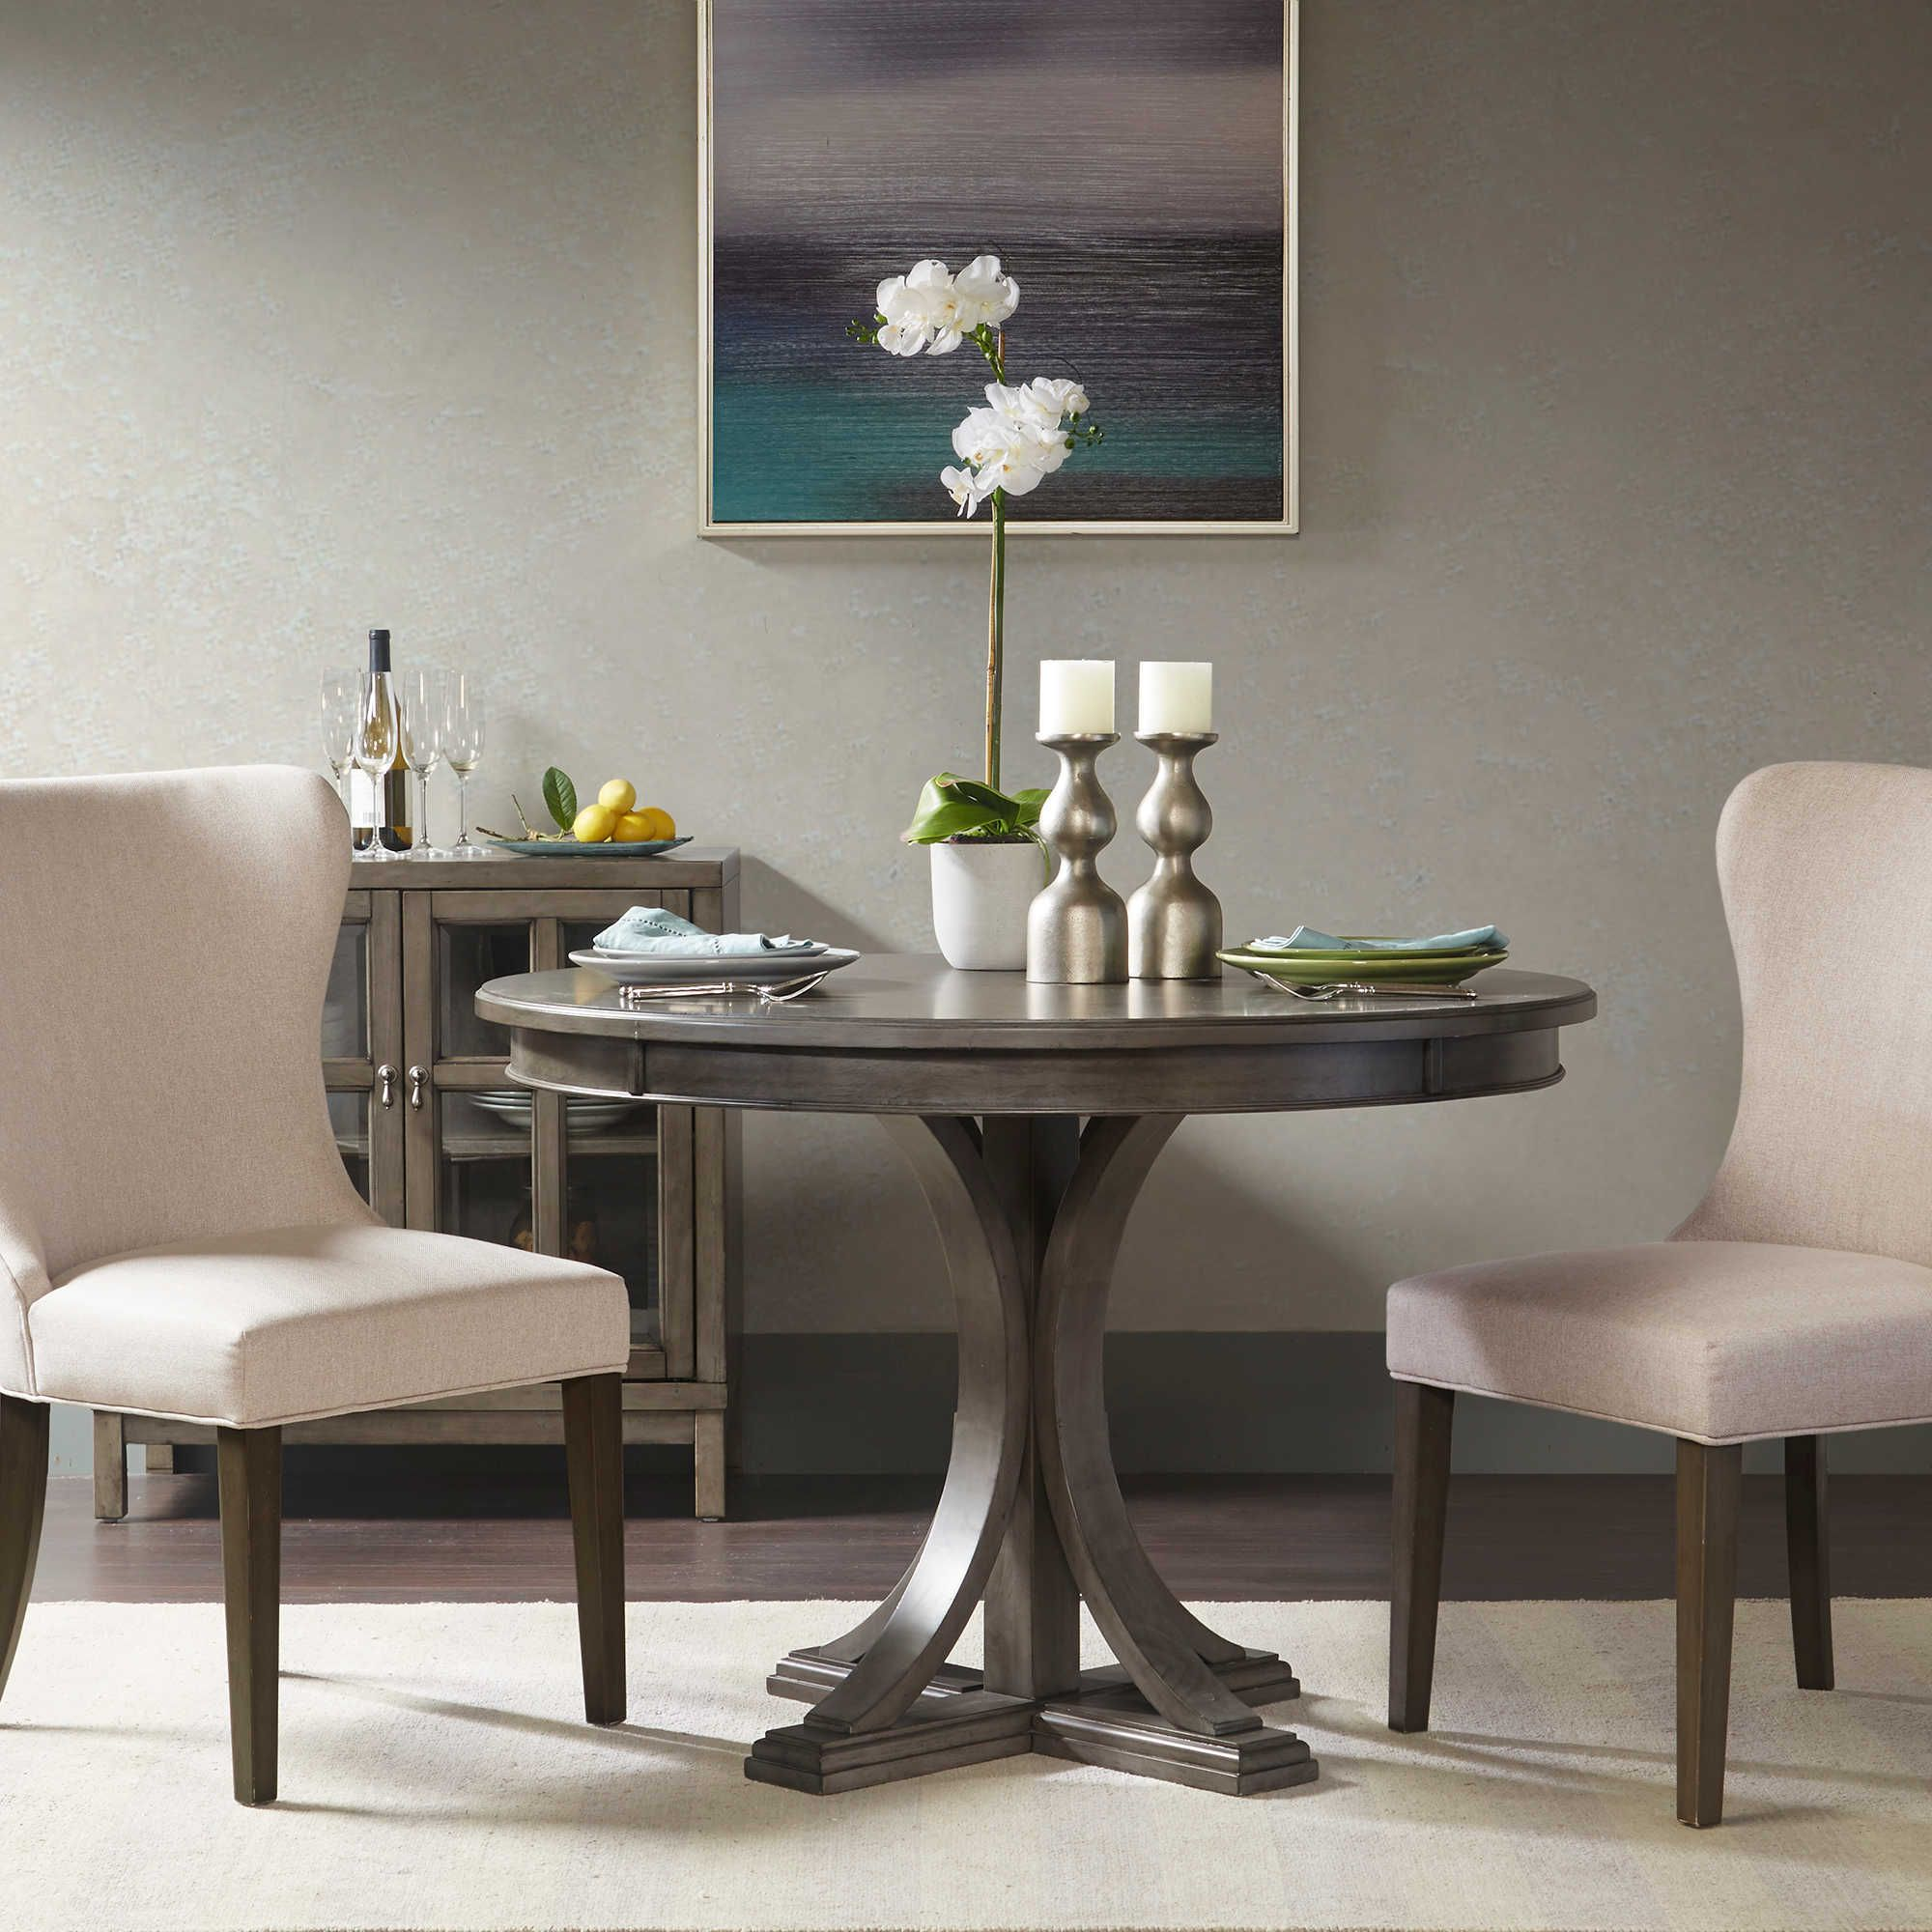 madison park signature helena round dining table sunroom porch rh pinterest com